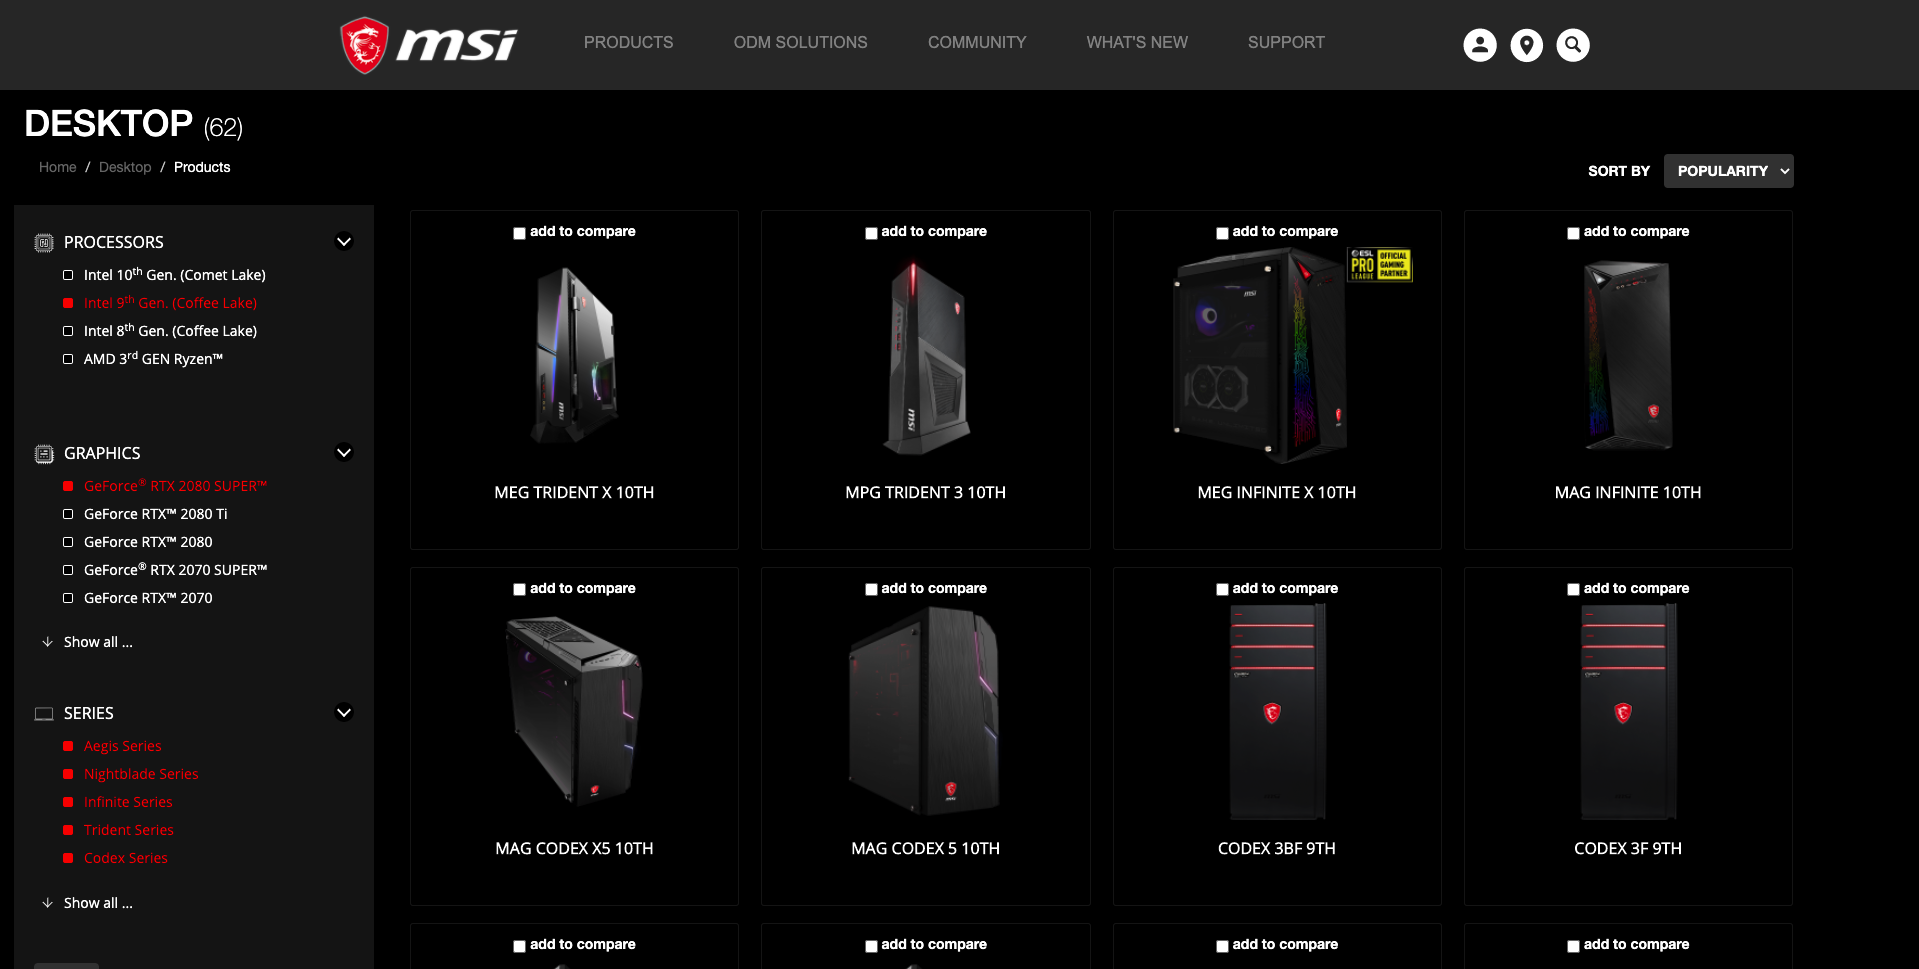 MSI, along with several gaming brands, offer customisation portals on their websites offering a wide variety of options.